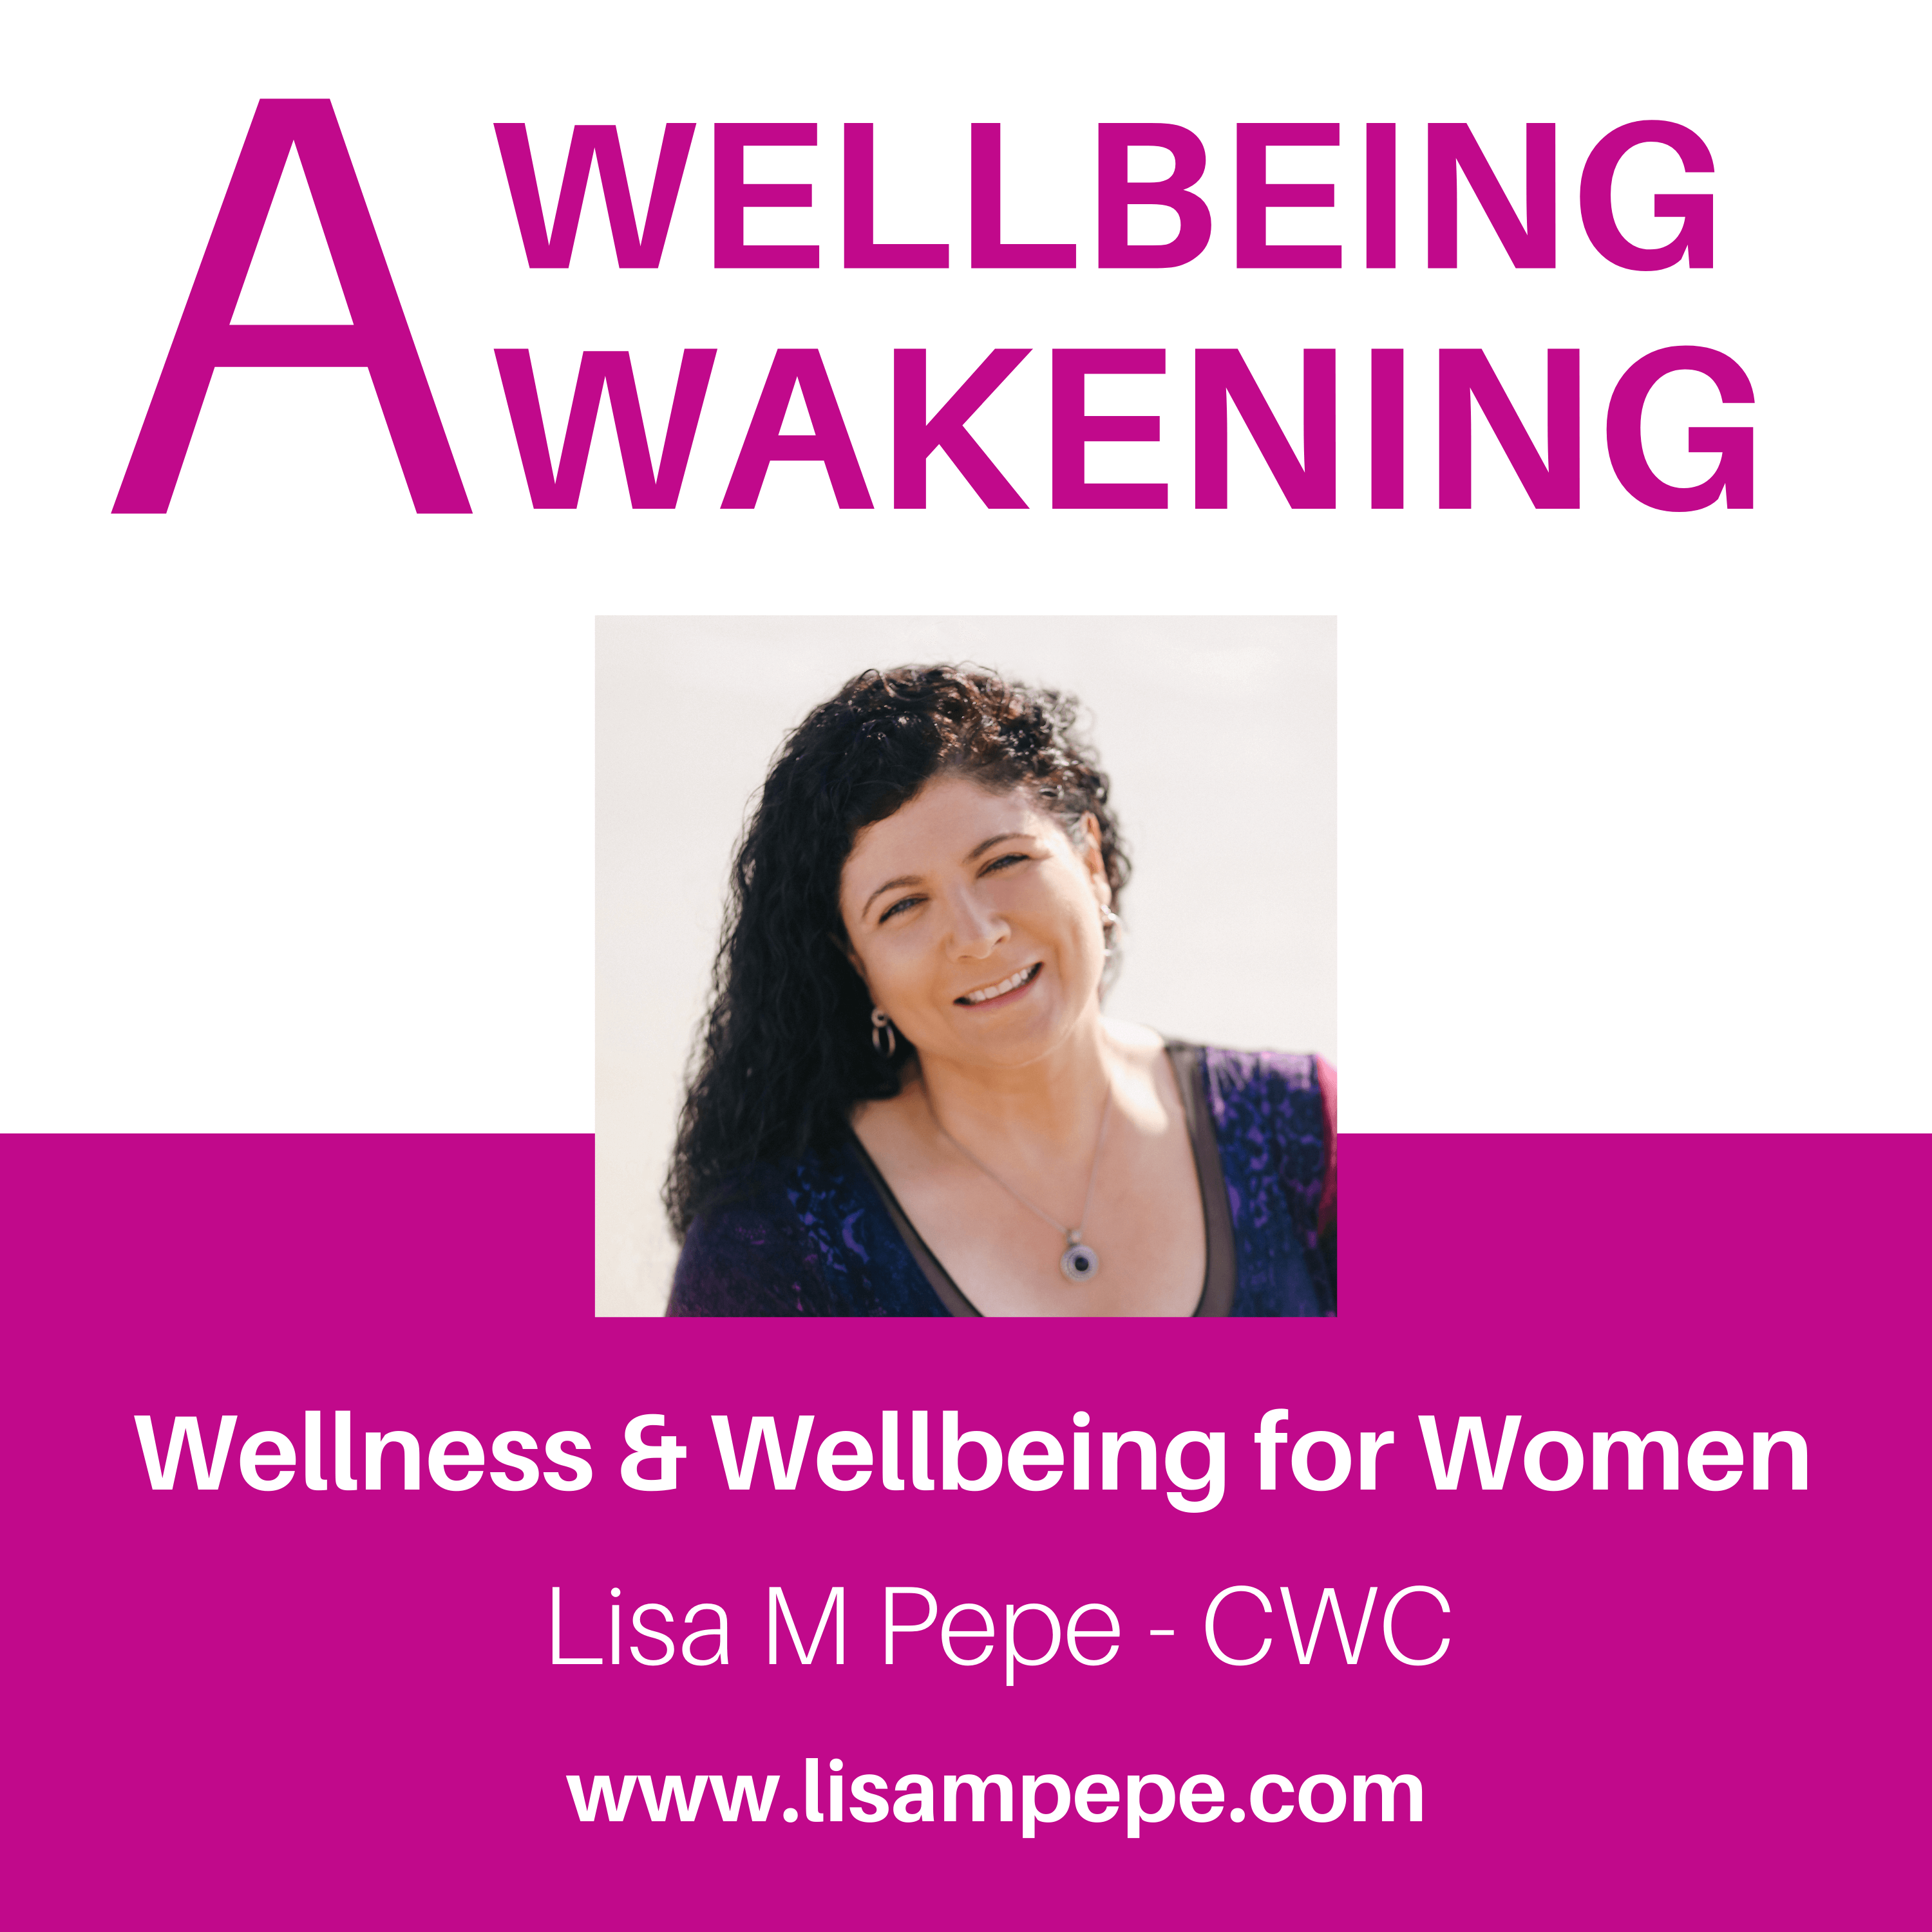 A Wellbeing Awakening with Lisa M Pepe, CWC